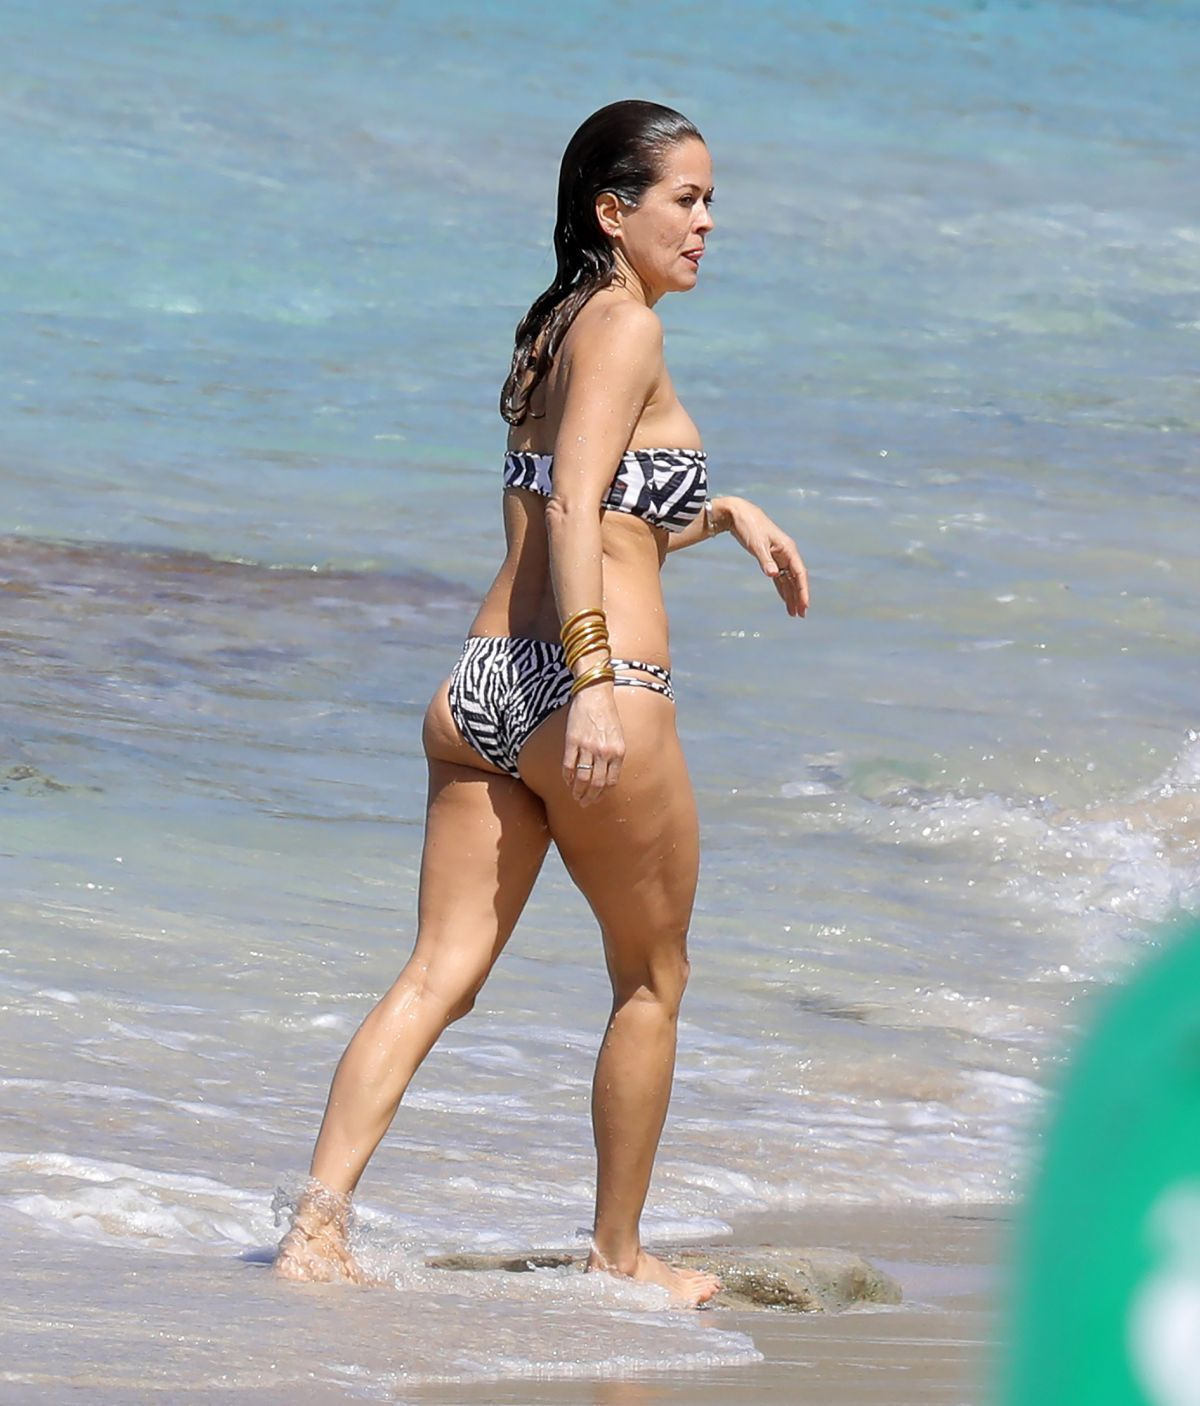 Bikini Brooke Burke naked (95 foto and video), Pussy, Paparazzi, Boobs, braless 2017